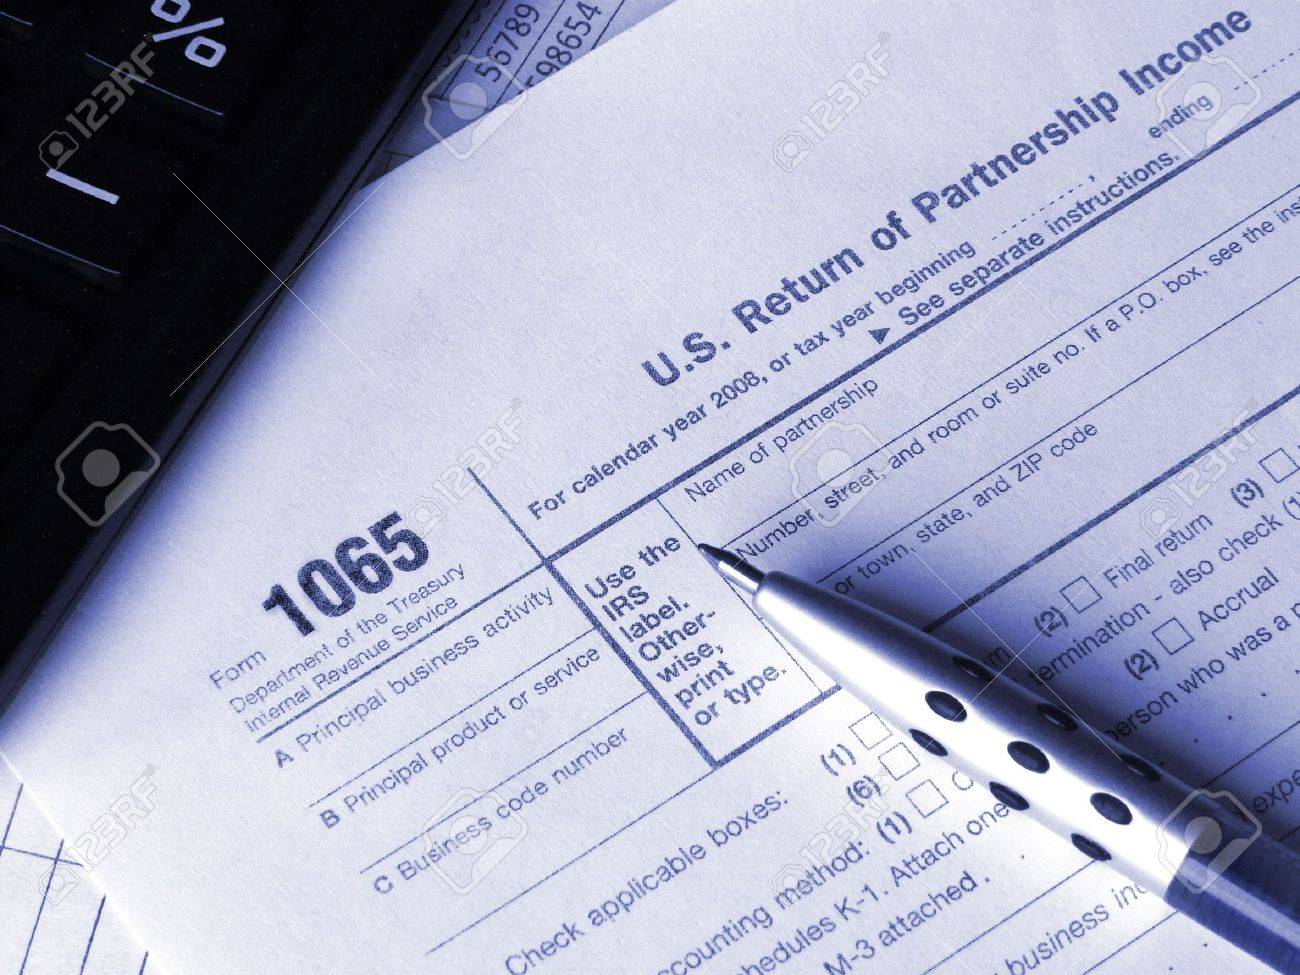 form 1065 calculator  Tax form 14, calculator and pen